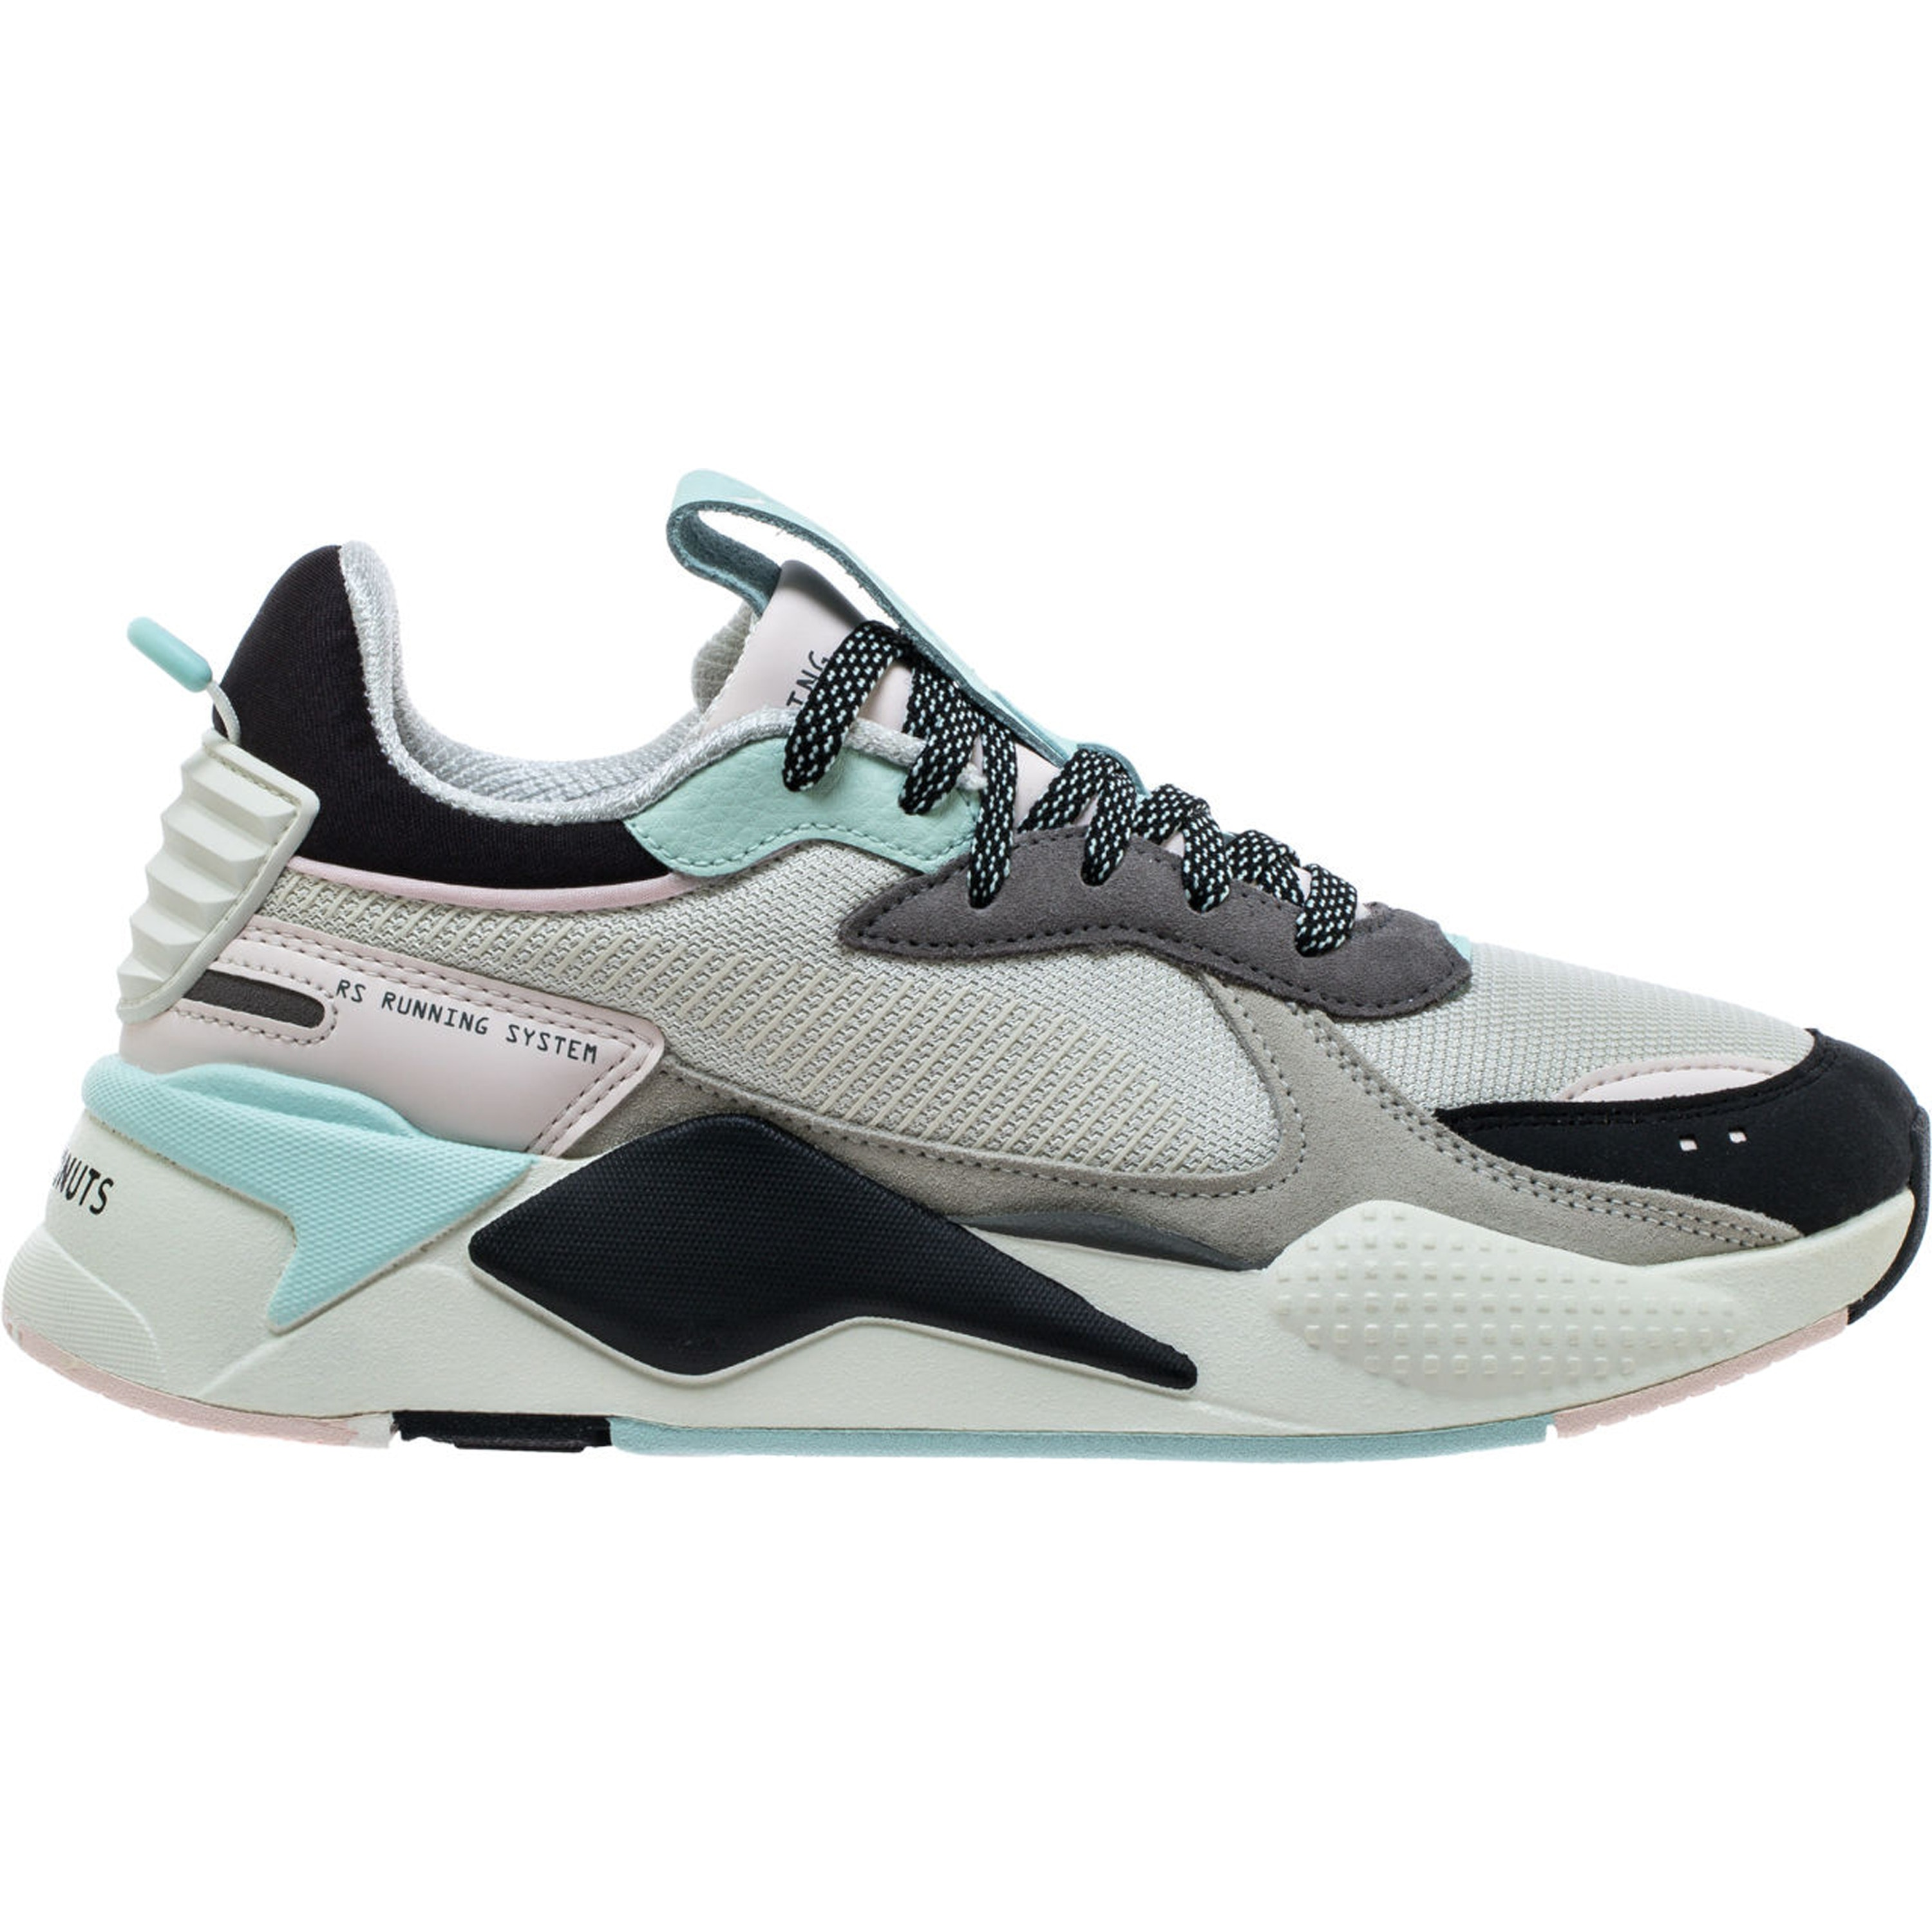 Puma RS-X Shoe Palace Falling Coconuts (371297-01)